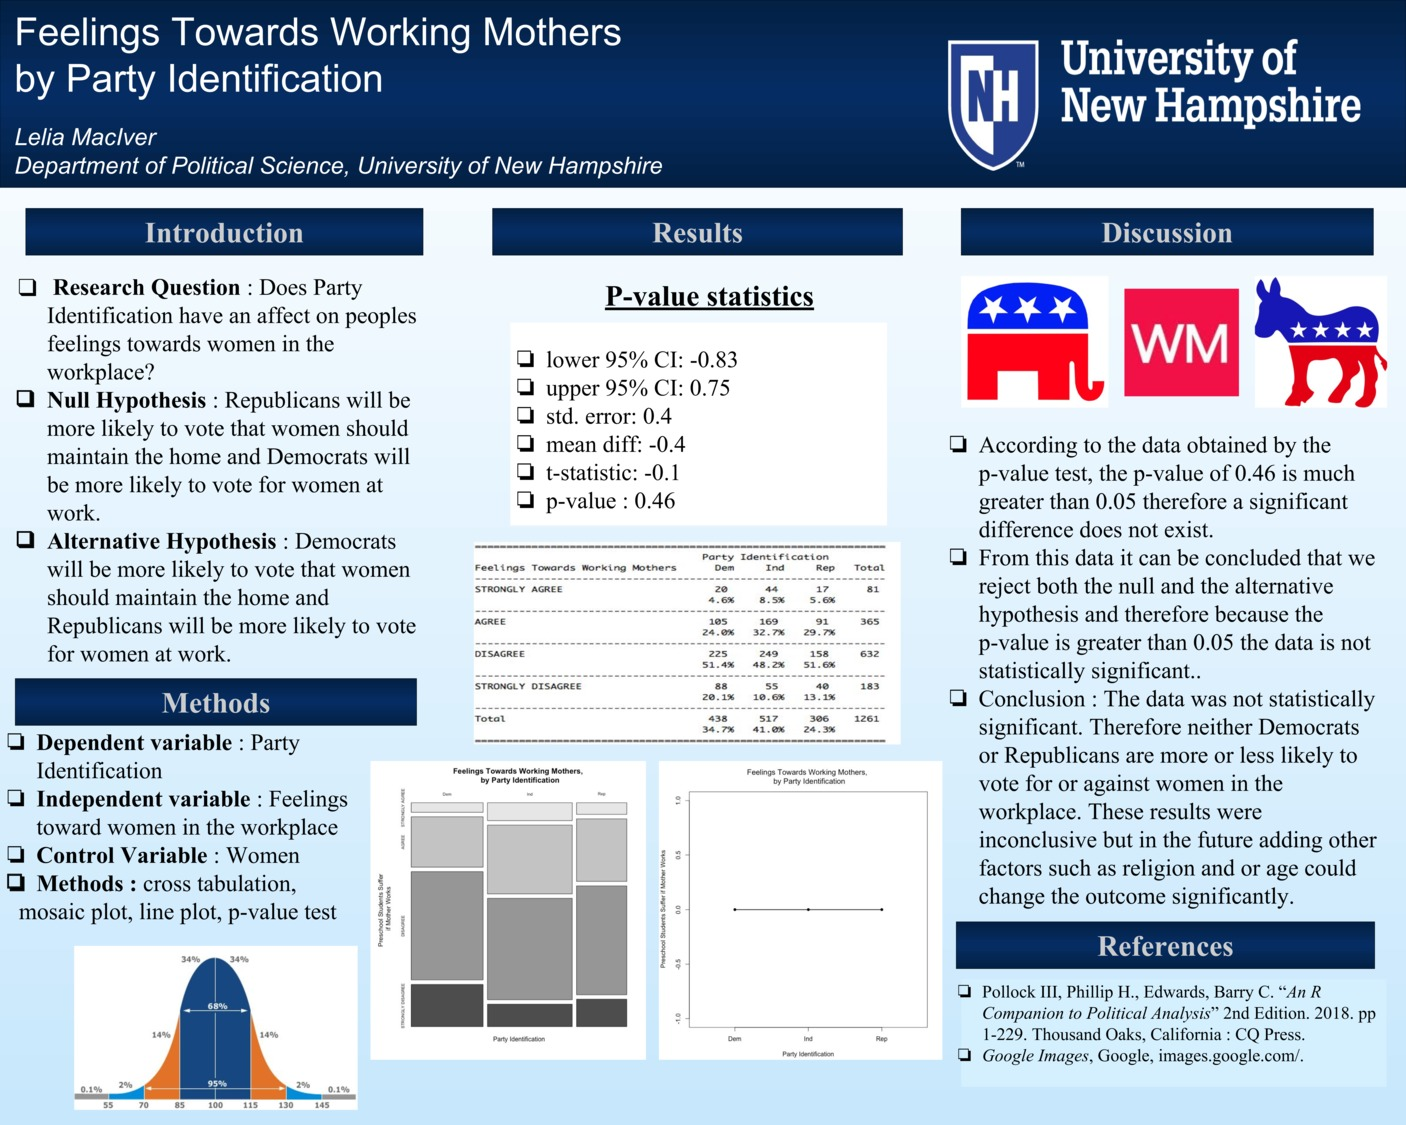 Feelings Towards Working Mothers By Party Identification by lpm1001